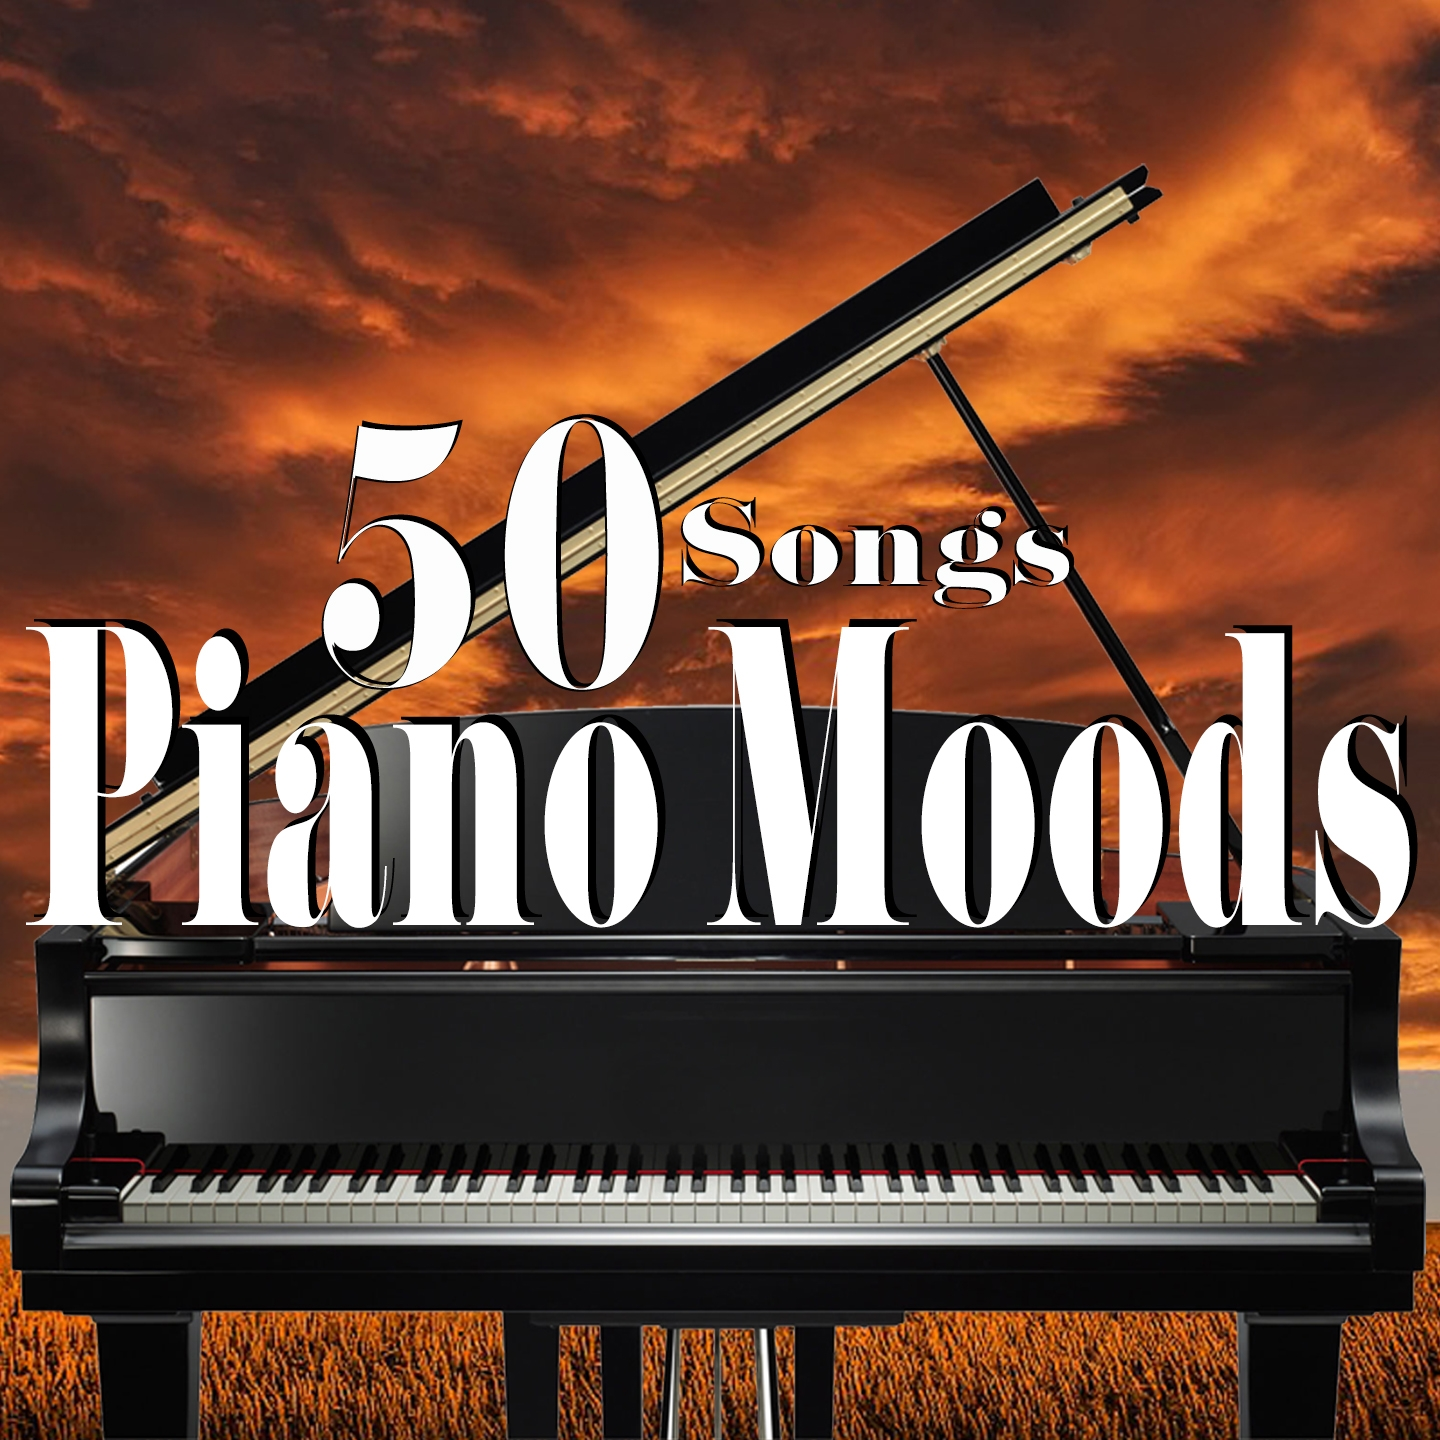 Piano Moods: 50 Songs